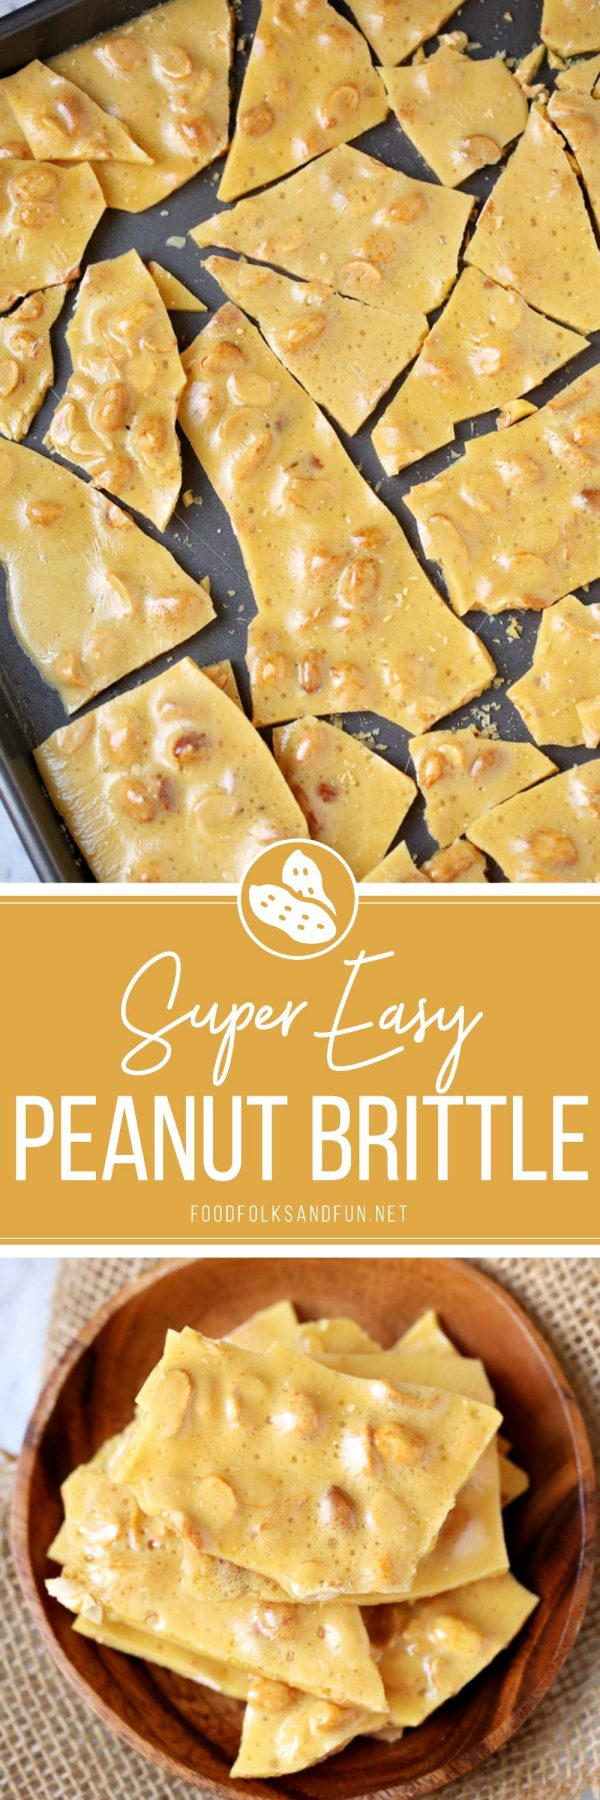 The best peanut brittle ever!